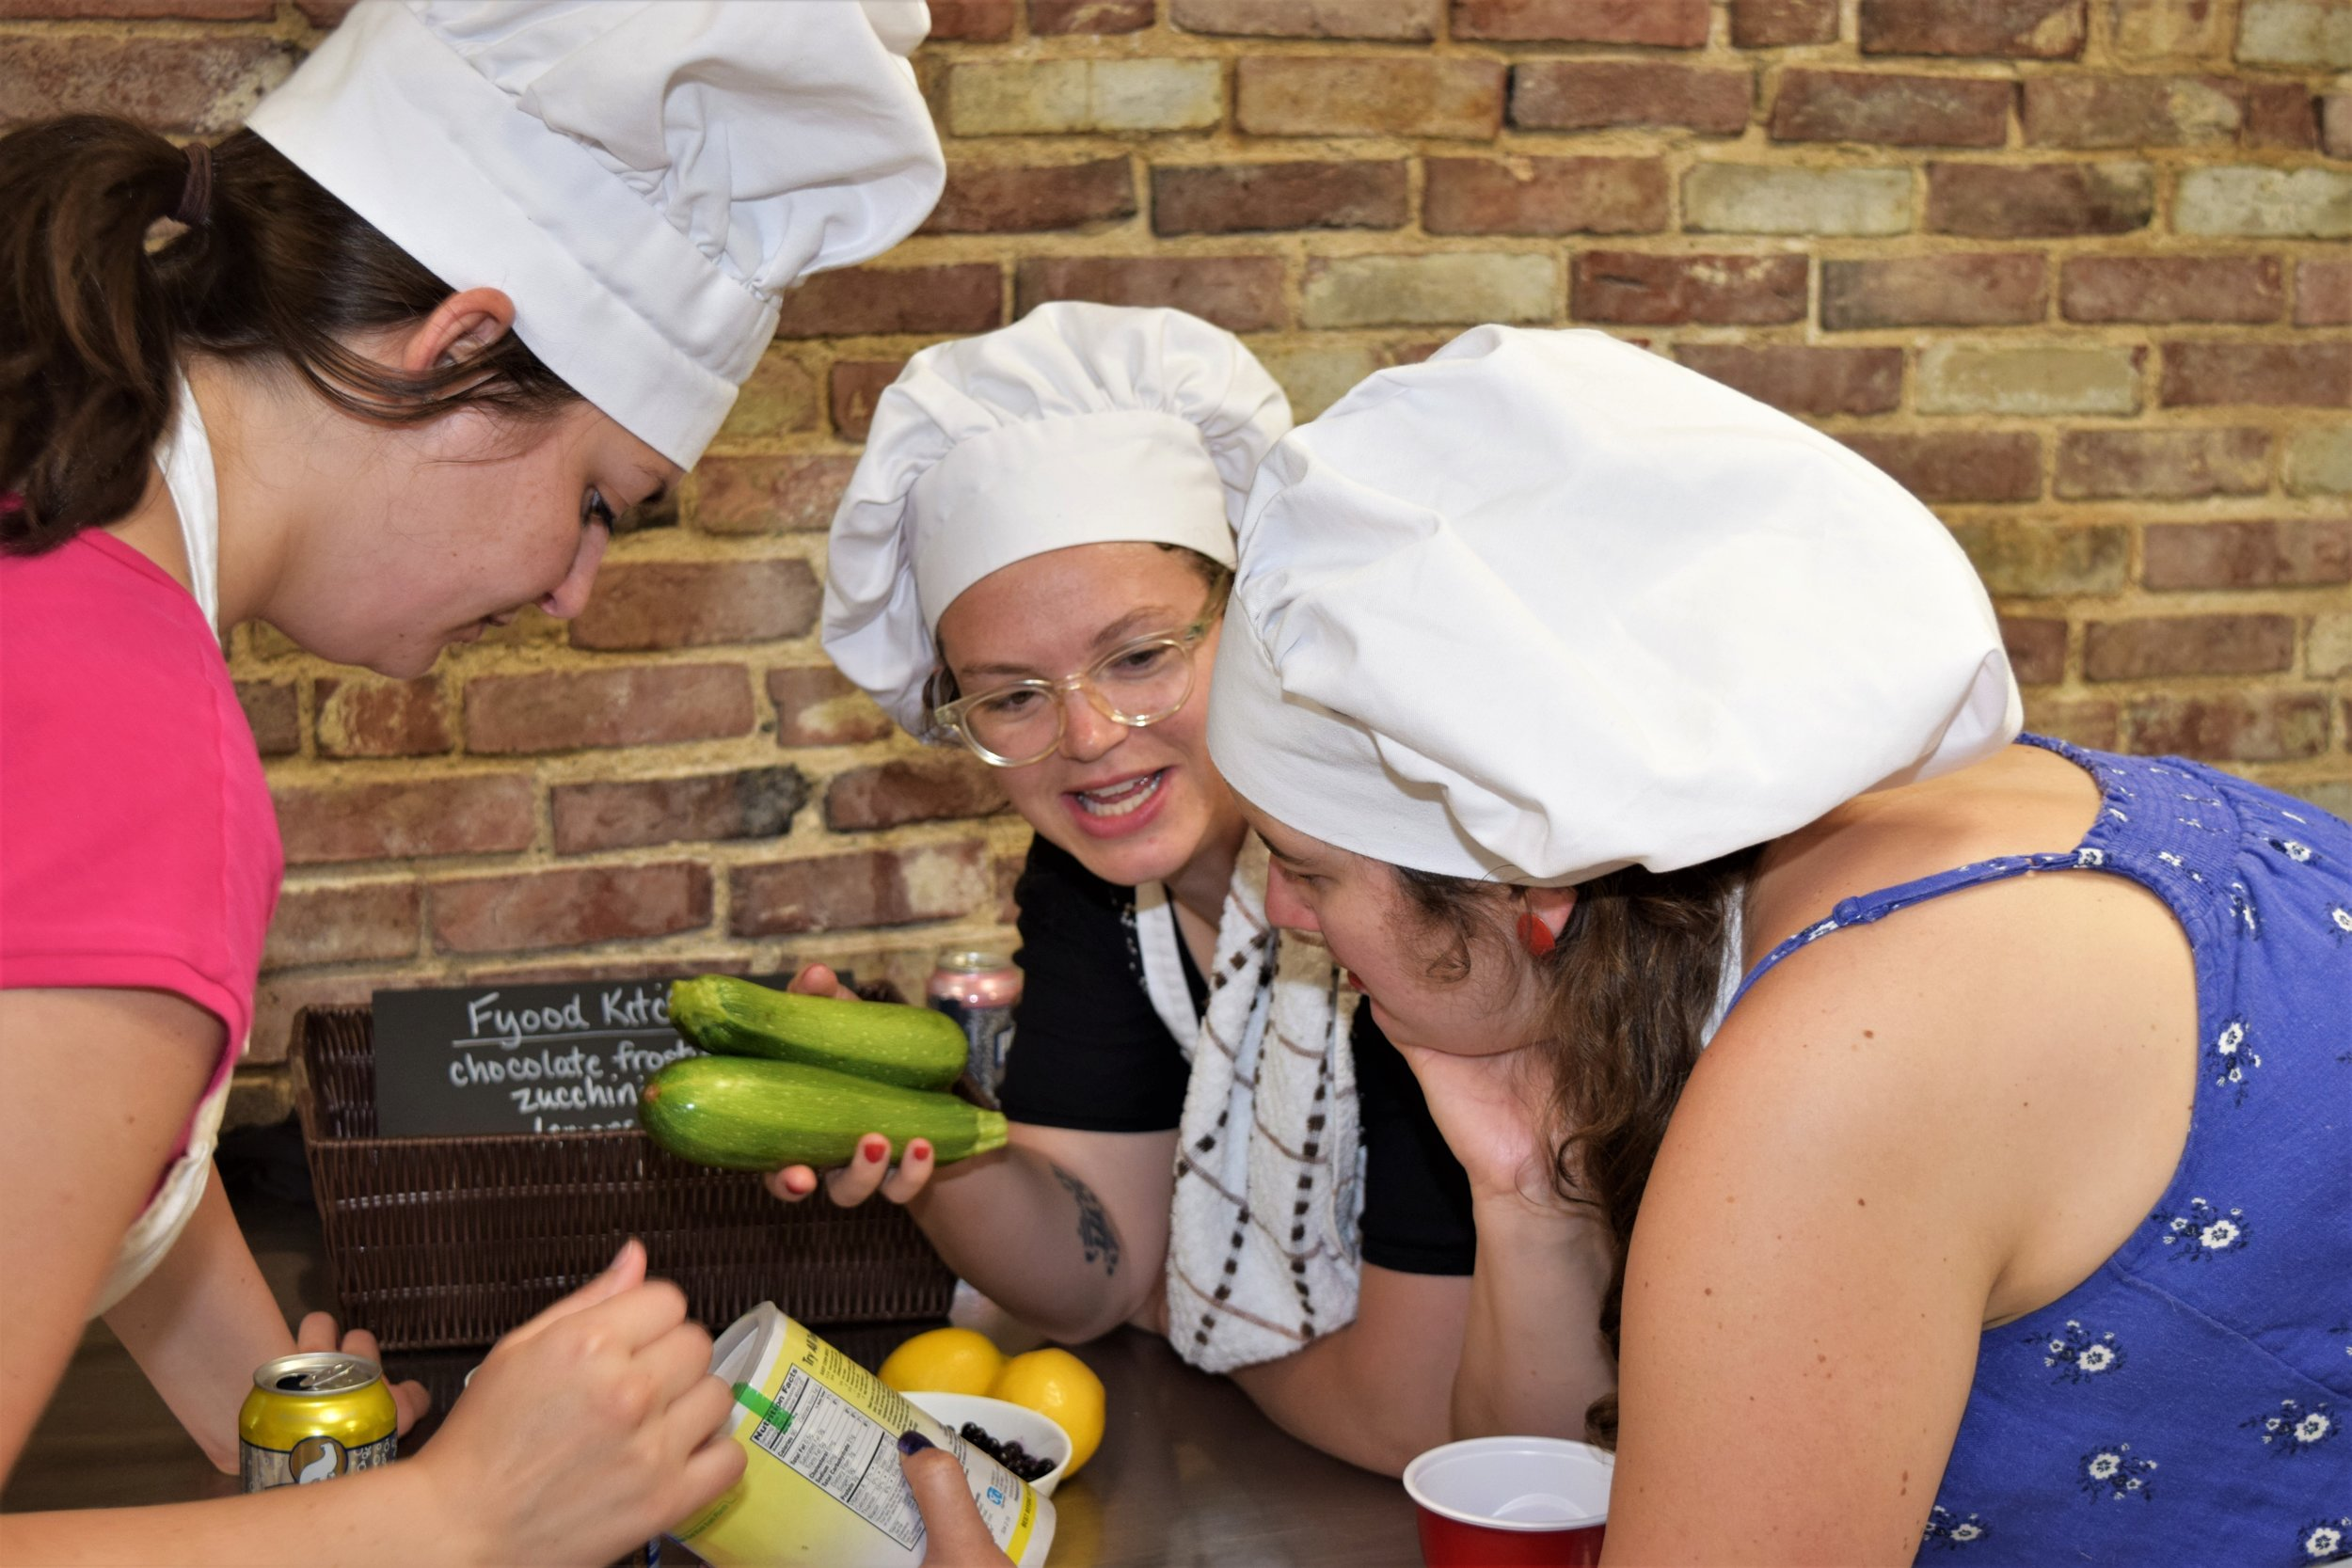 Women brainstorming dish with zucchini and chocolate frosting